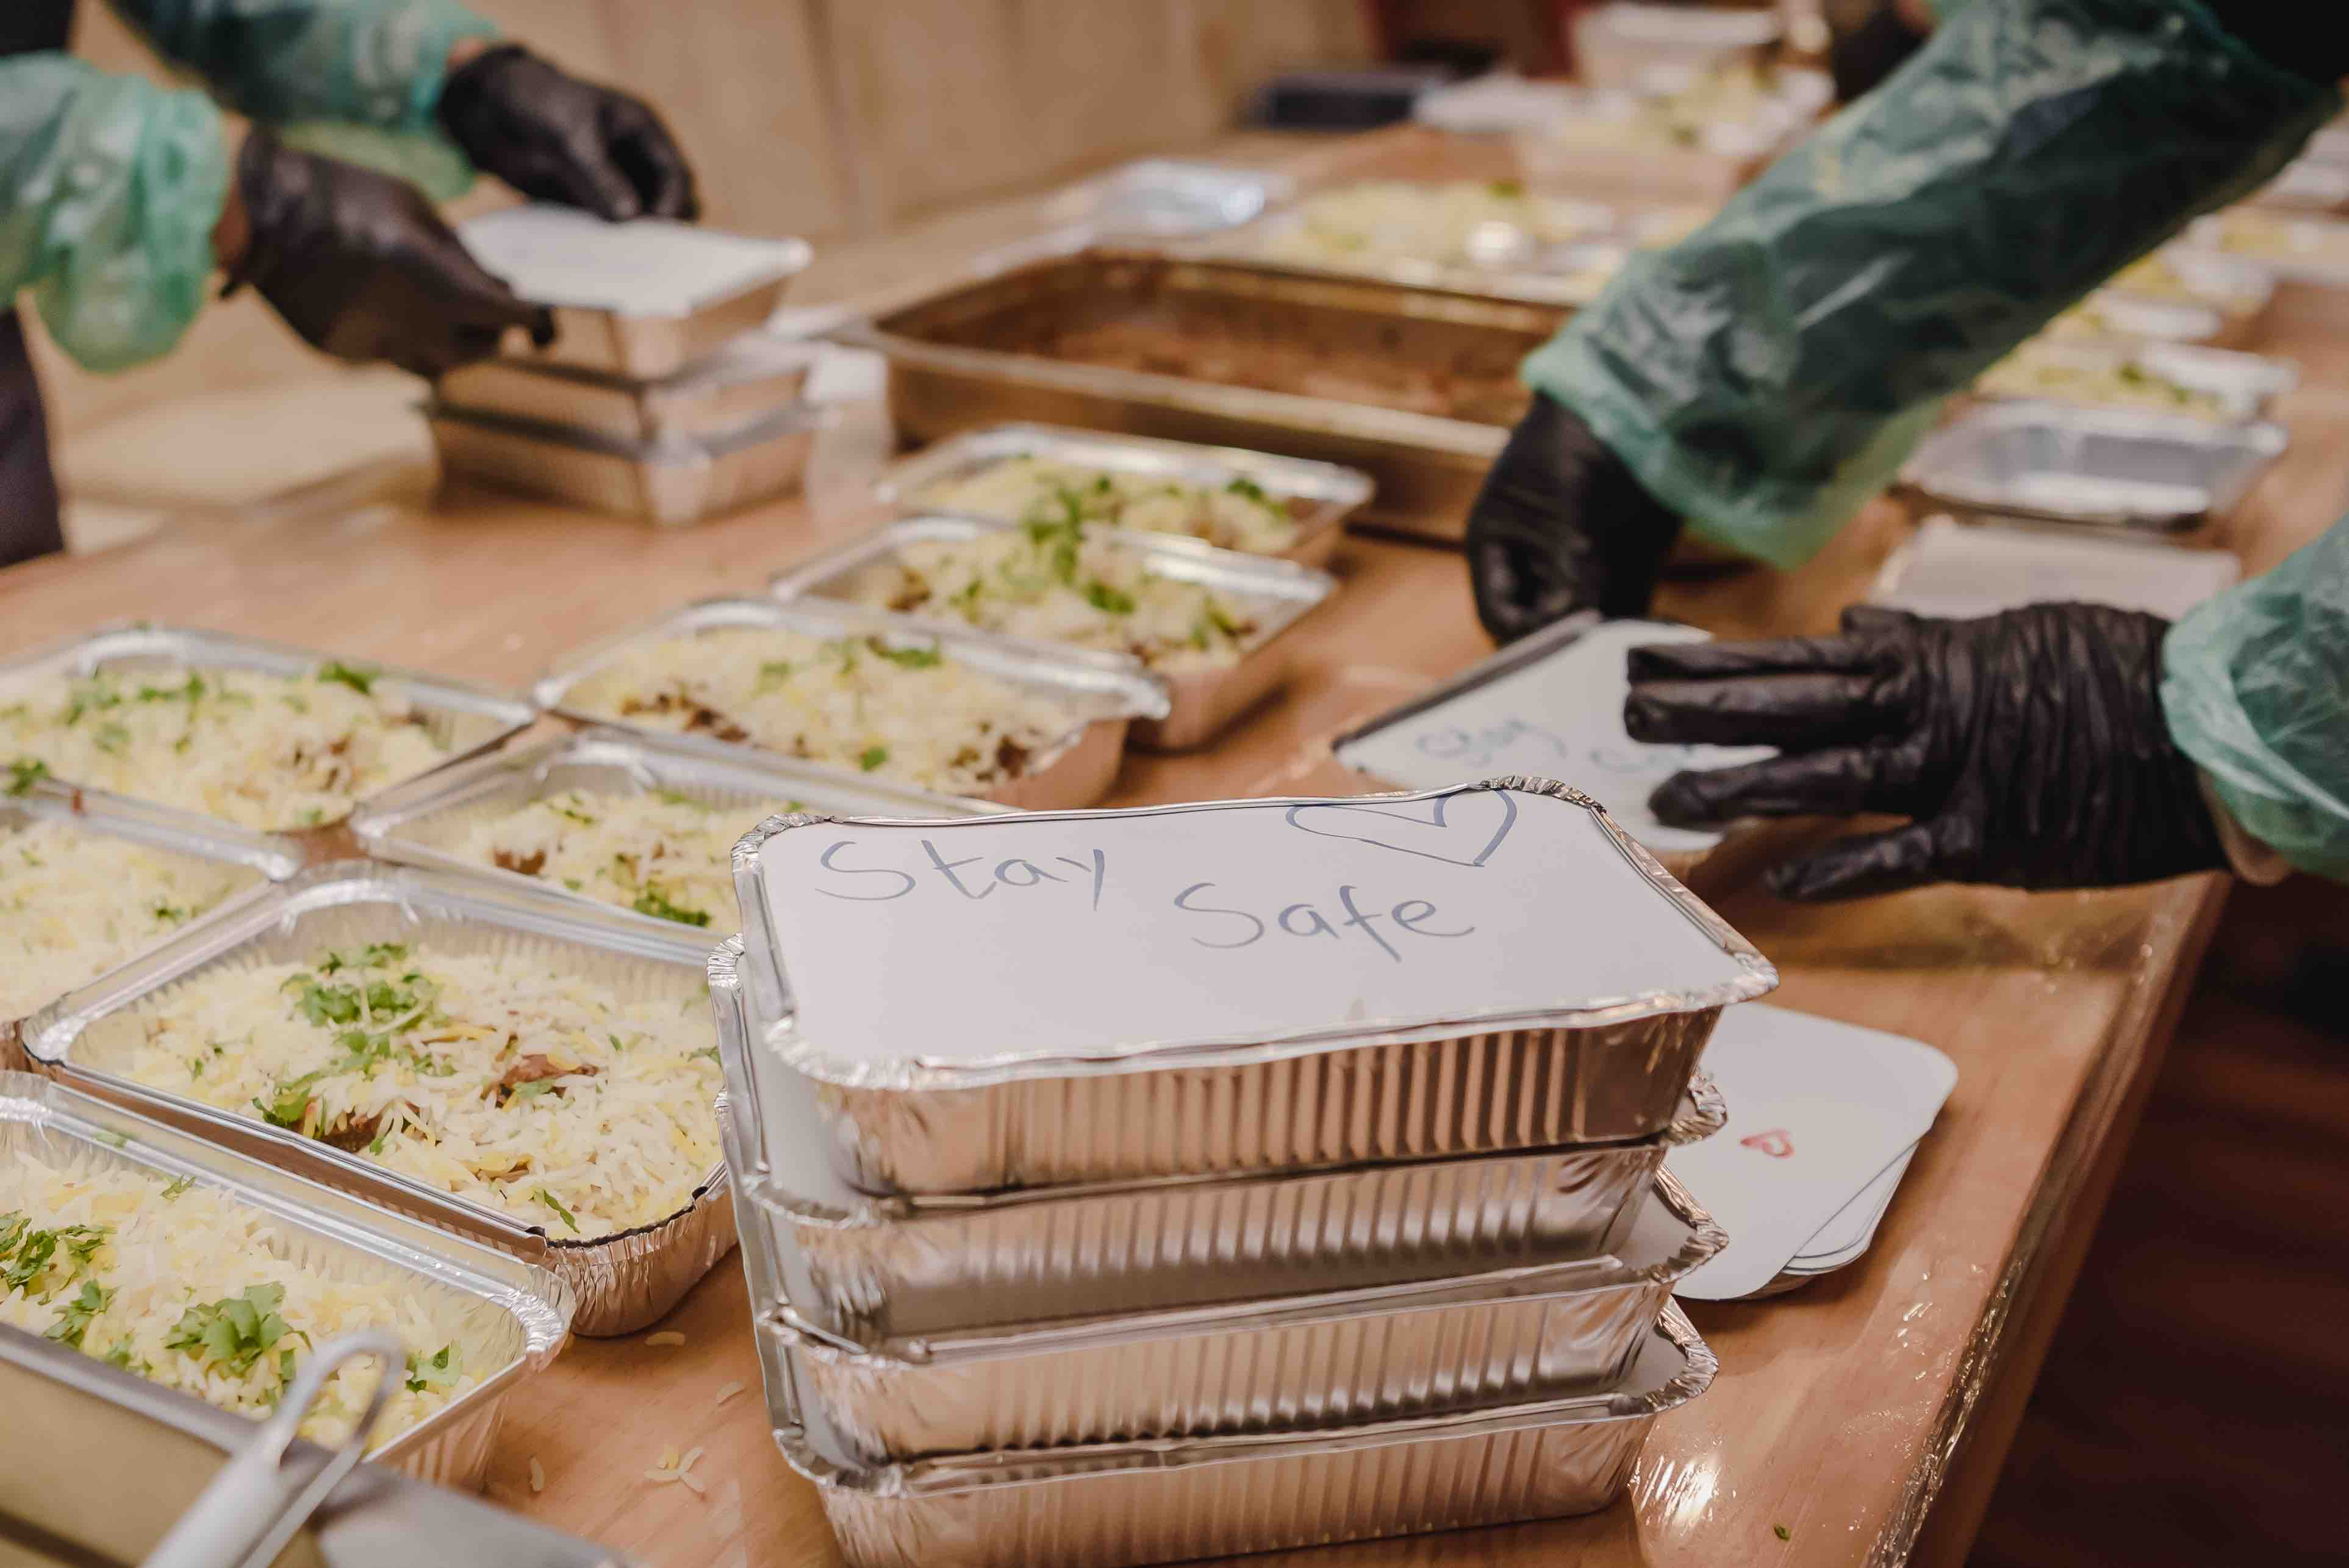 Alabbar Enterprises feeding people in need